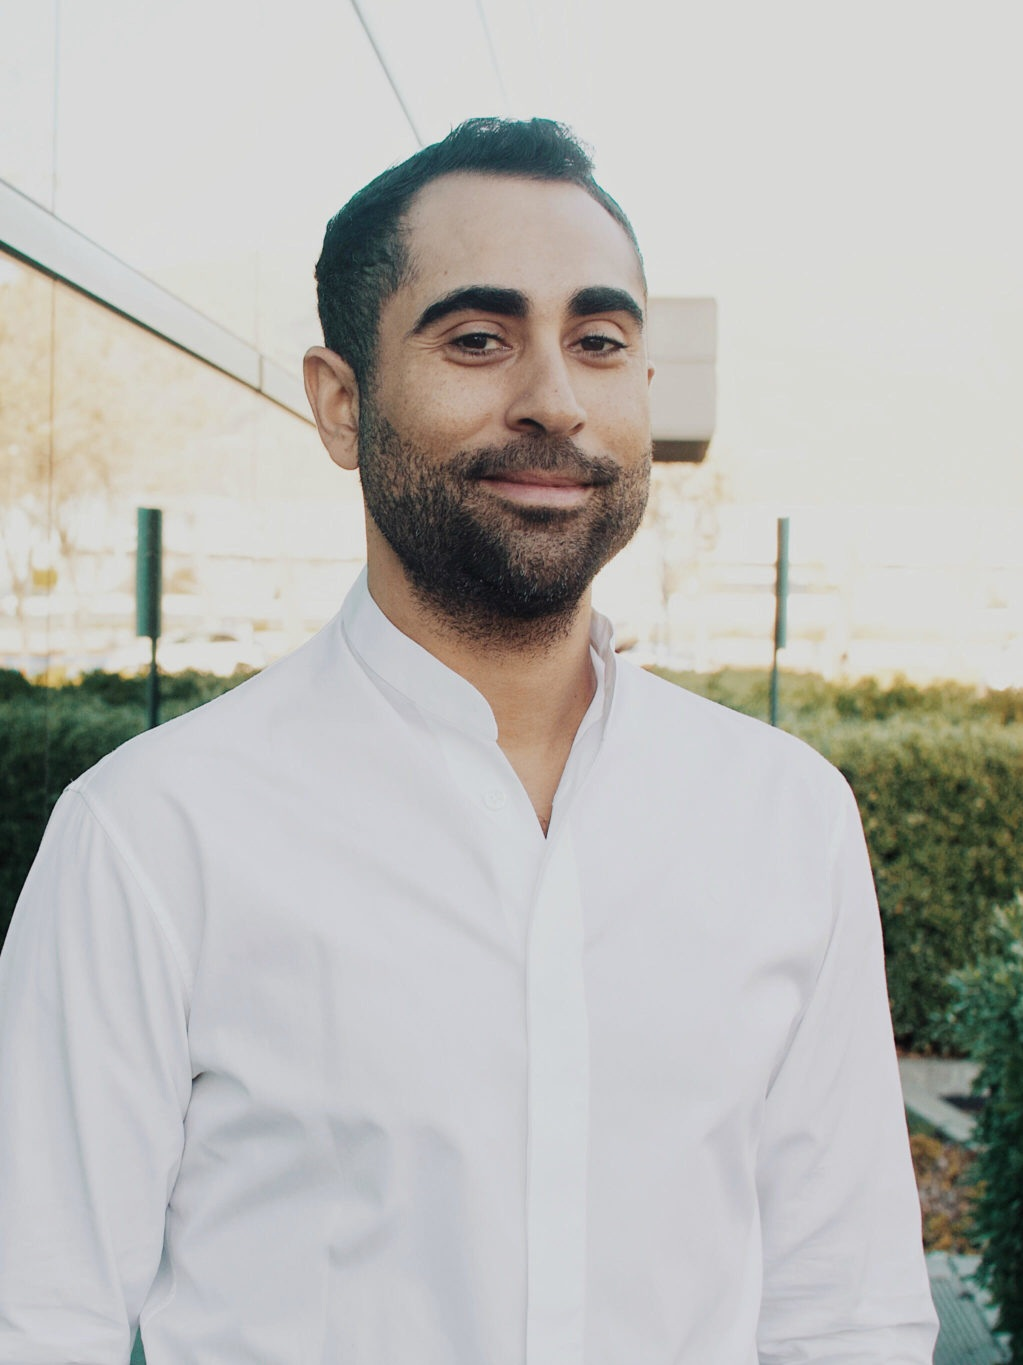 Shareef El-Sissi - CO-FOUNDER & CSOShareef co-founded Treez with John Yang in 2016, as a result of encountering and trying to solve real-time challenges at his own dispensary, Garden of Eden. He and John developed such compelling software solutions that together they recognized the marketability of the platform to other dispensaries, and soon Treez was born. El-Sissi's driving principle is automation and he sees a future in cannabis retail that reduces the human element in favor of more efficient processes.El-Sissi has been a Director of California-based Eden Enterprises, a collection of vertically integrated businesses with the same partner, since 2009. Eden Enterprises continues to push for higher quality through its development of it's portfolio brands. El-Sissi continues to draw on Eden to drive the product direction and Treez to drive Eden's.Shareef earned his B.A. in Managerial Economics from U.C. Davis.